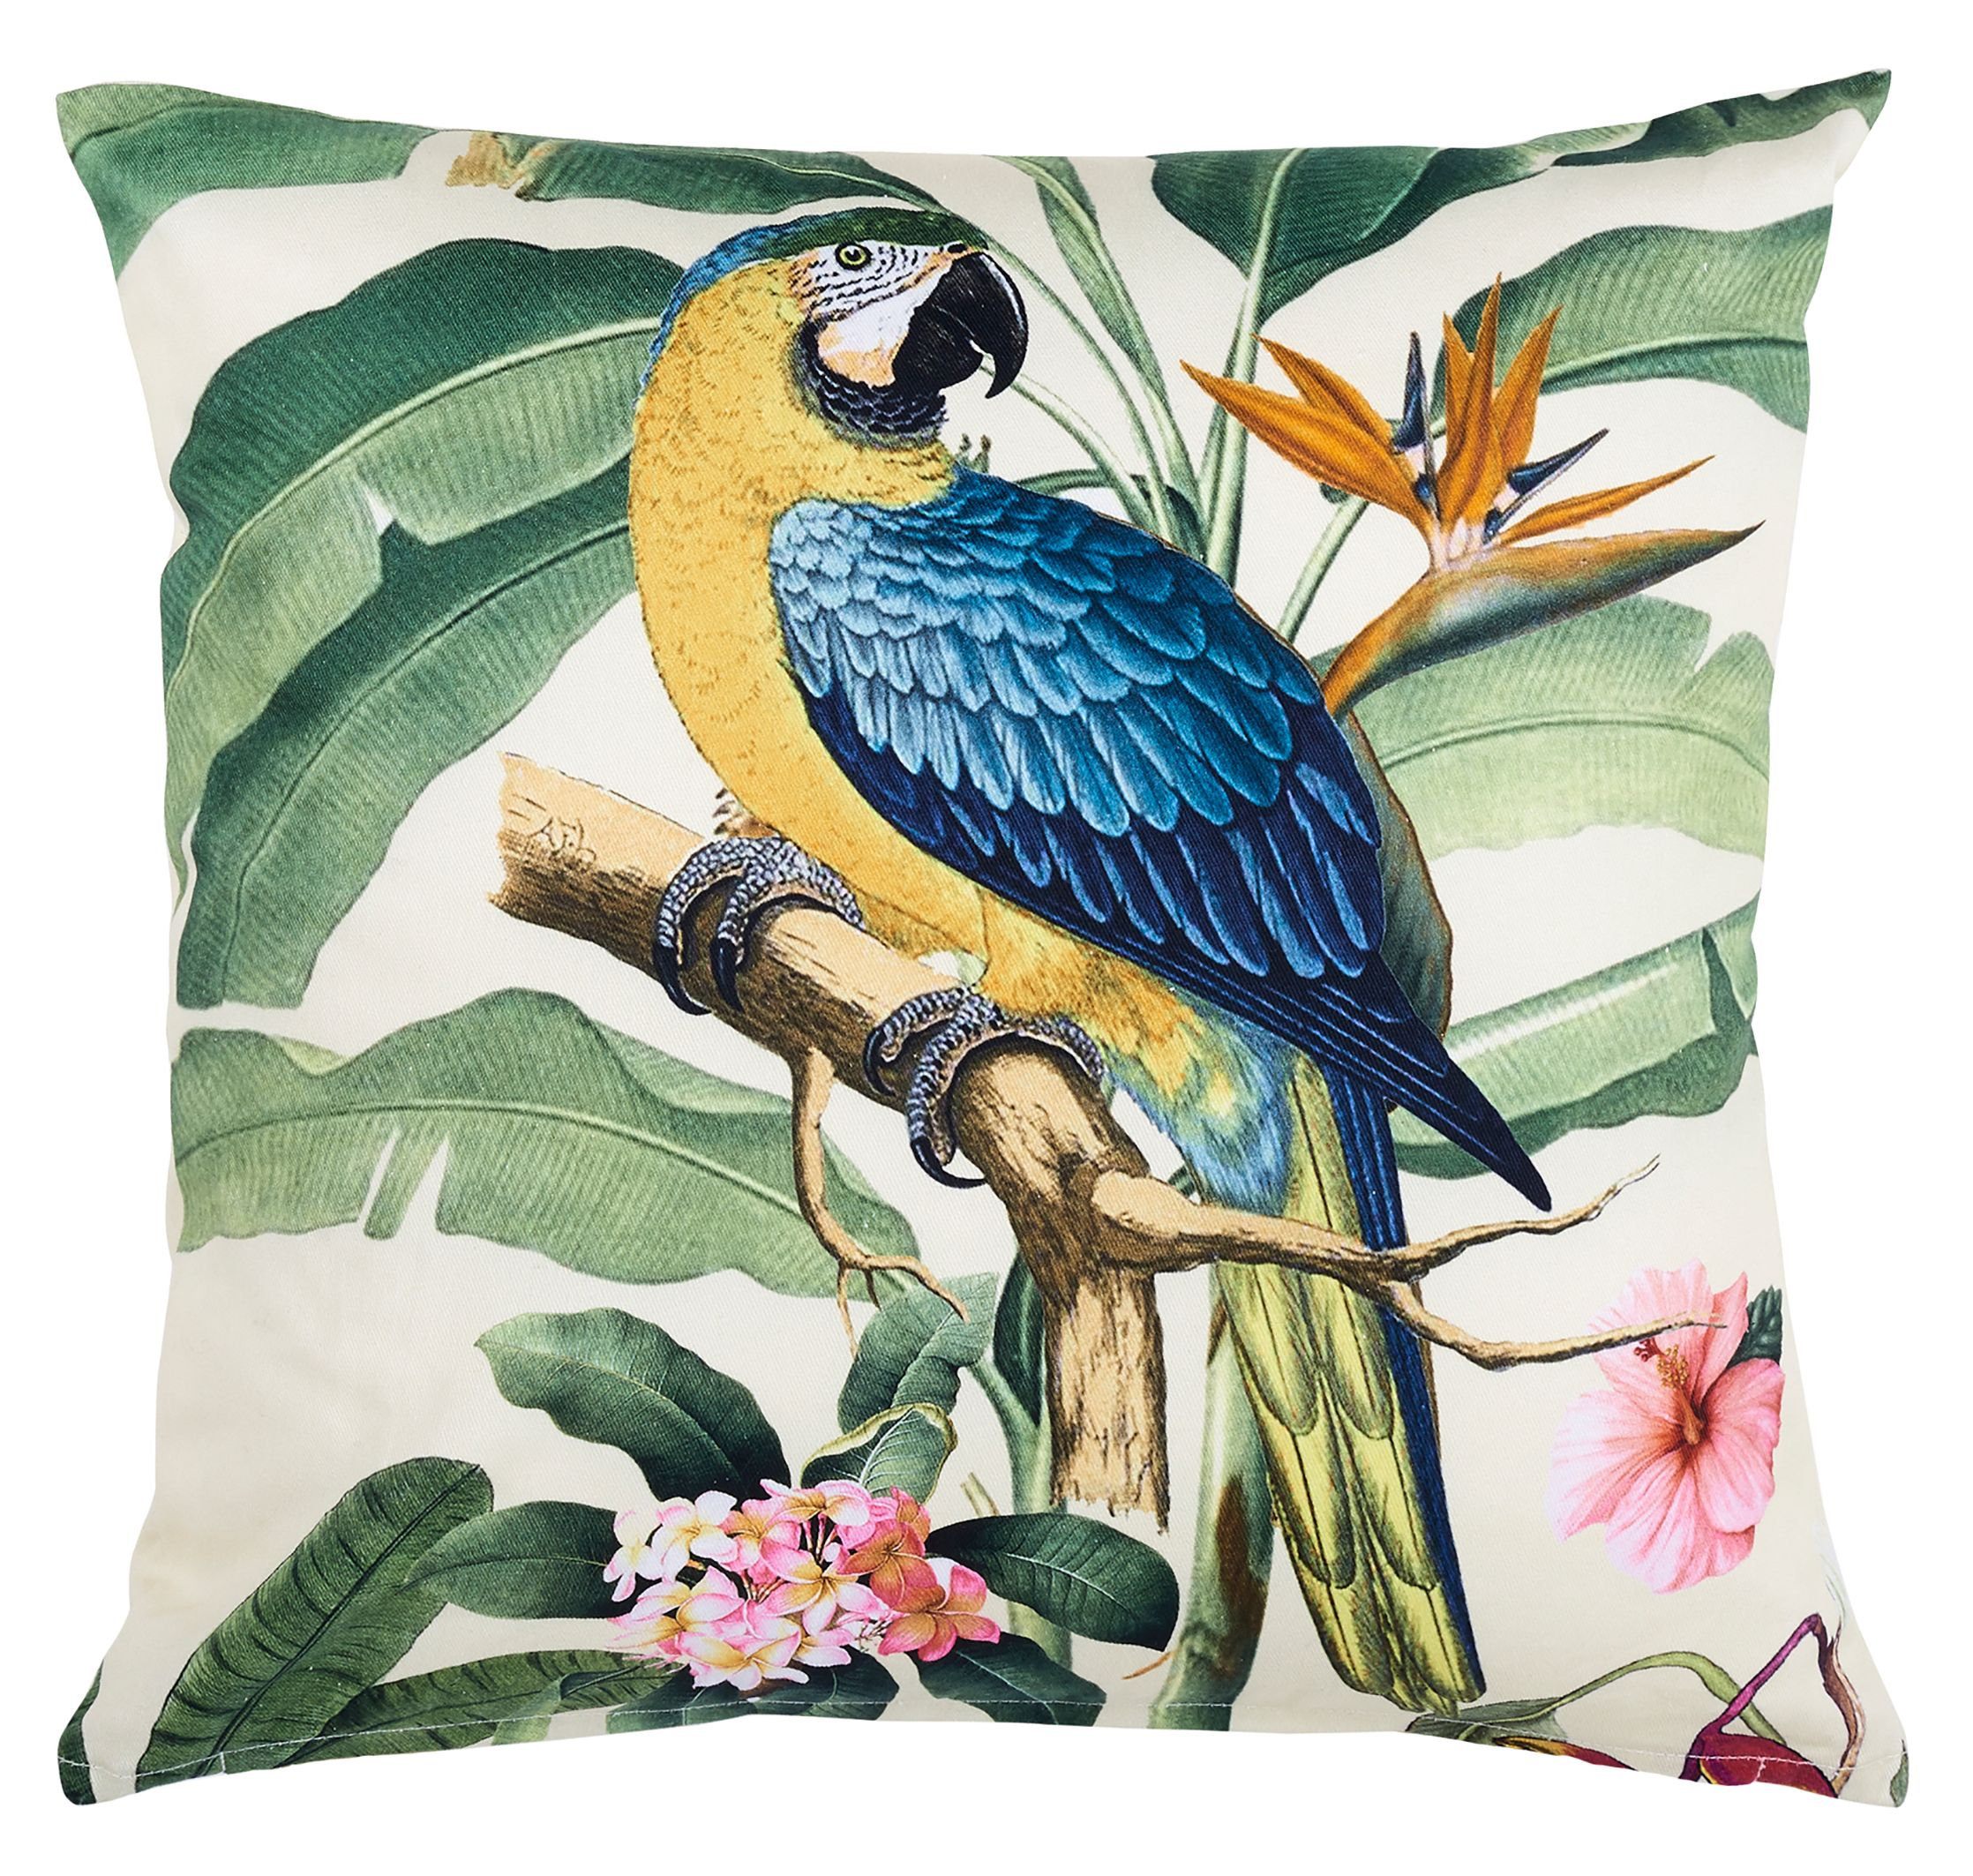 Tissu Bouchara #bouchara - Coussin Jaco - Bouchara Collection - Www